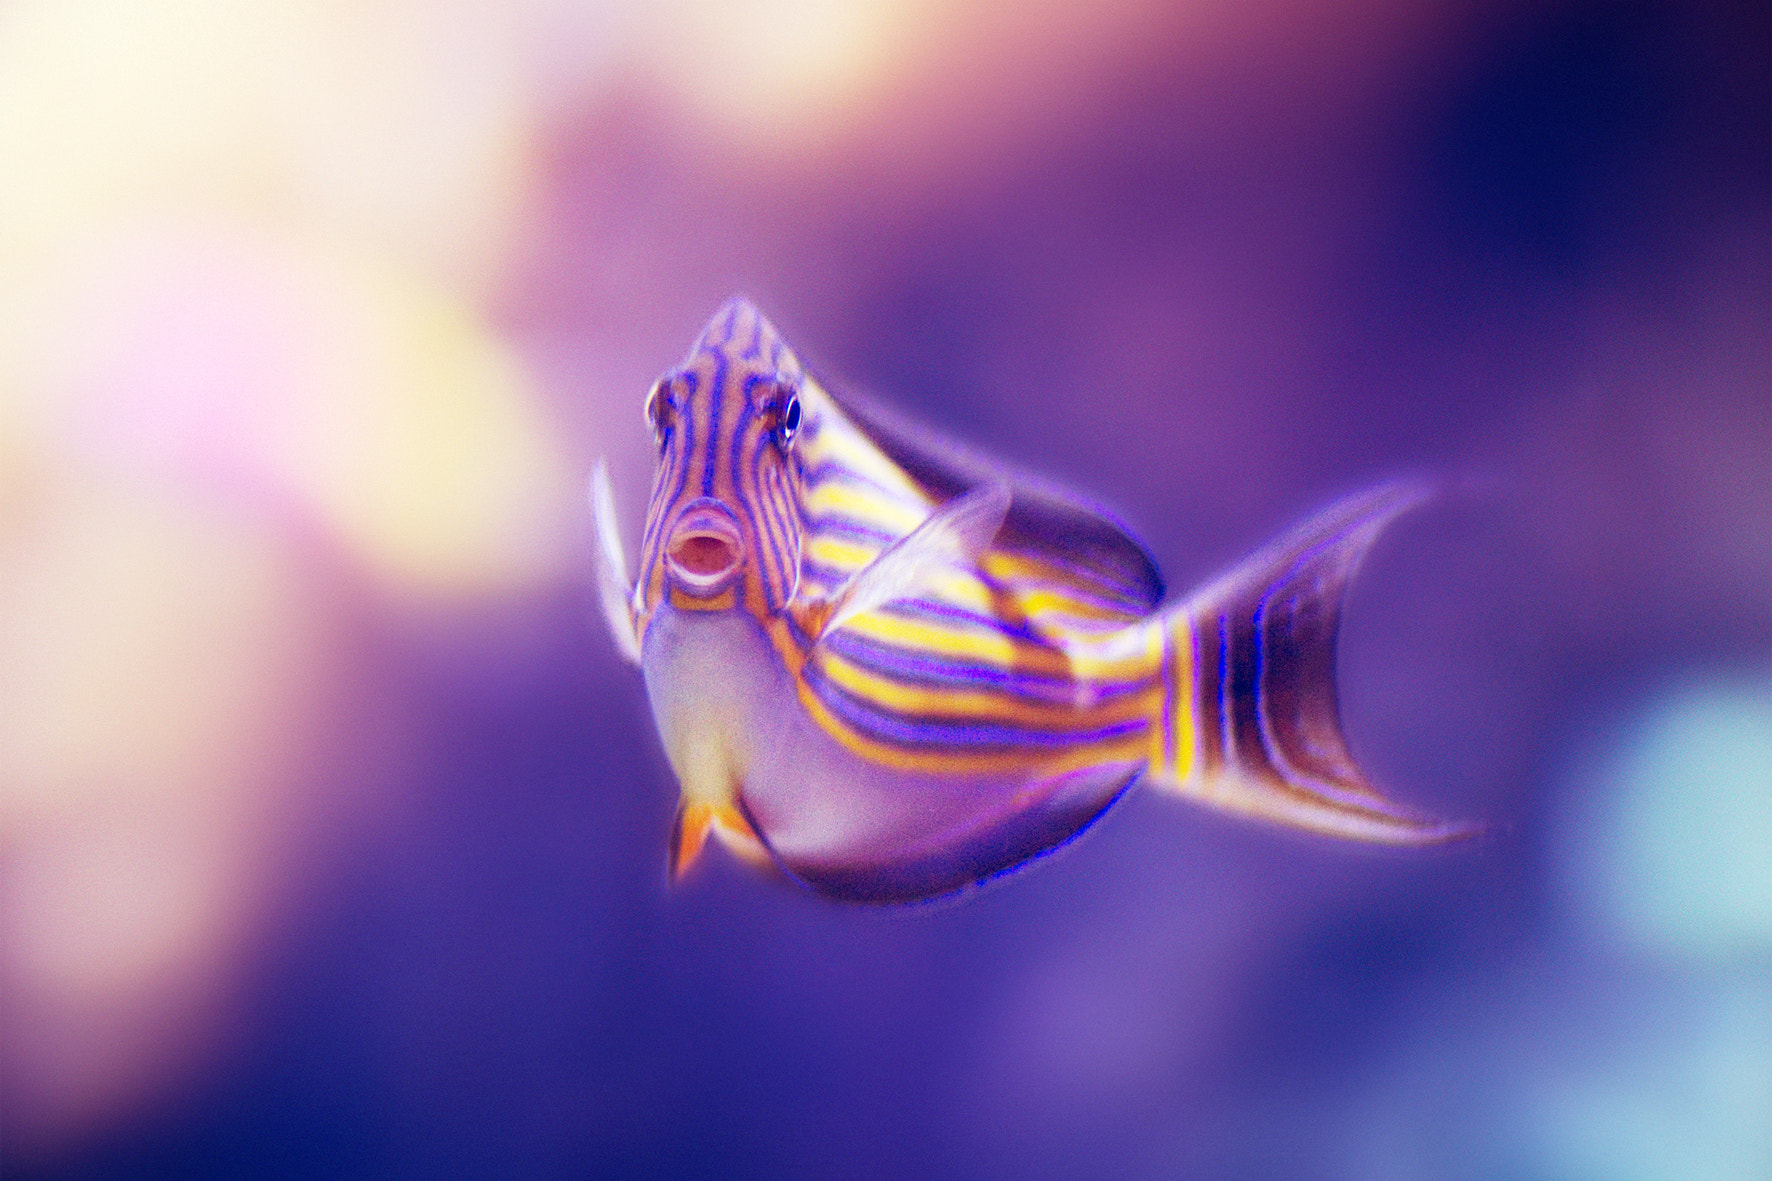 Photograph Fishy by Jens S on 500px